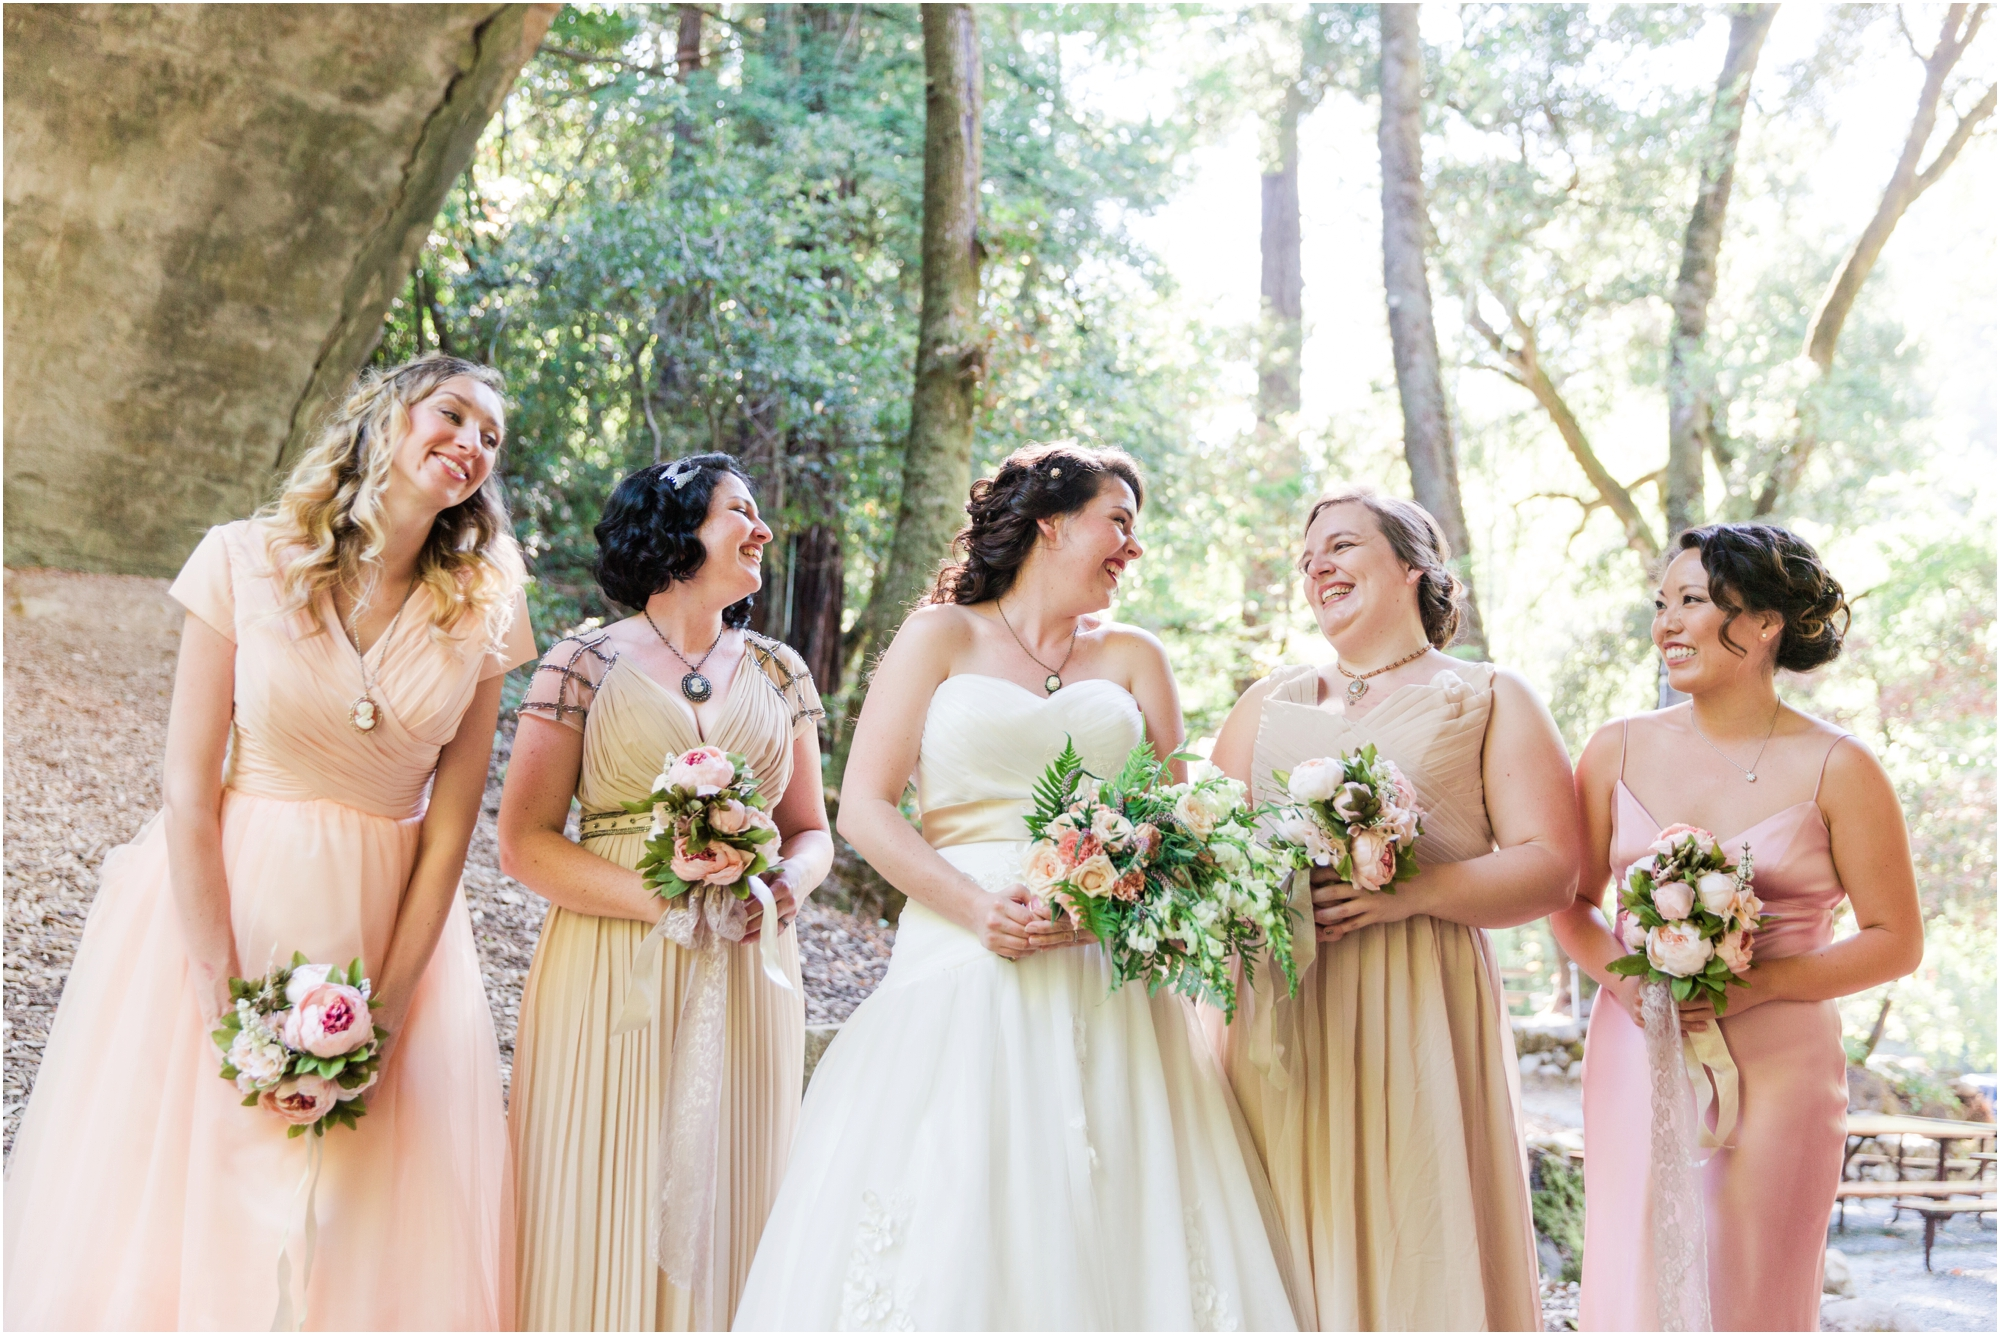 Saratoga Springs wedding pictures by Briana Calderon Photography_1827.jpg